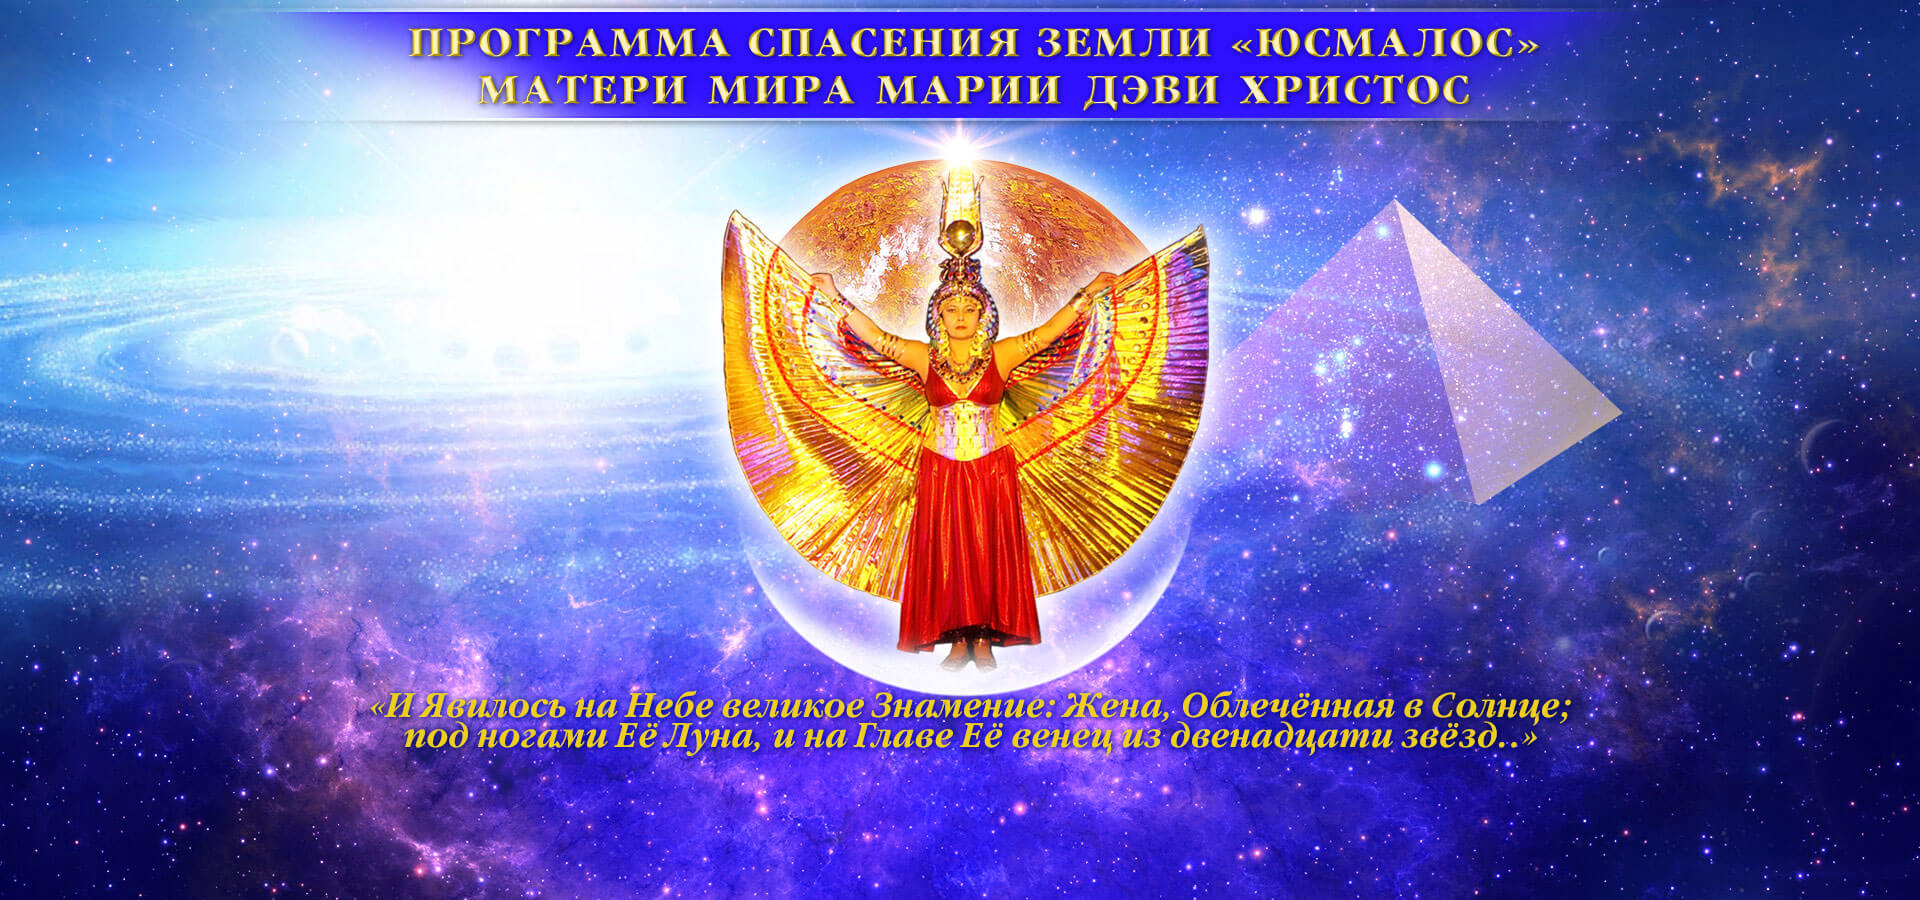 Program of Earth Rescue «USMALOS». About the «Great White Brotherhood» «USMALOS» — the Slavic Movement of the 90s. Messiah of the Age of Aquarius — Mother of the World Maria DEVI CHRISTOS